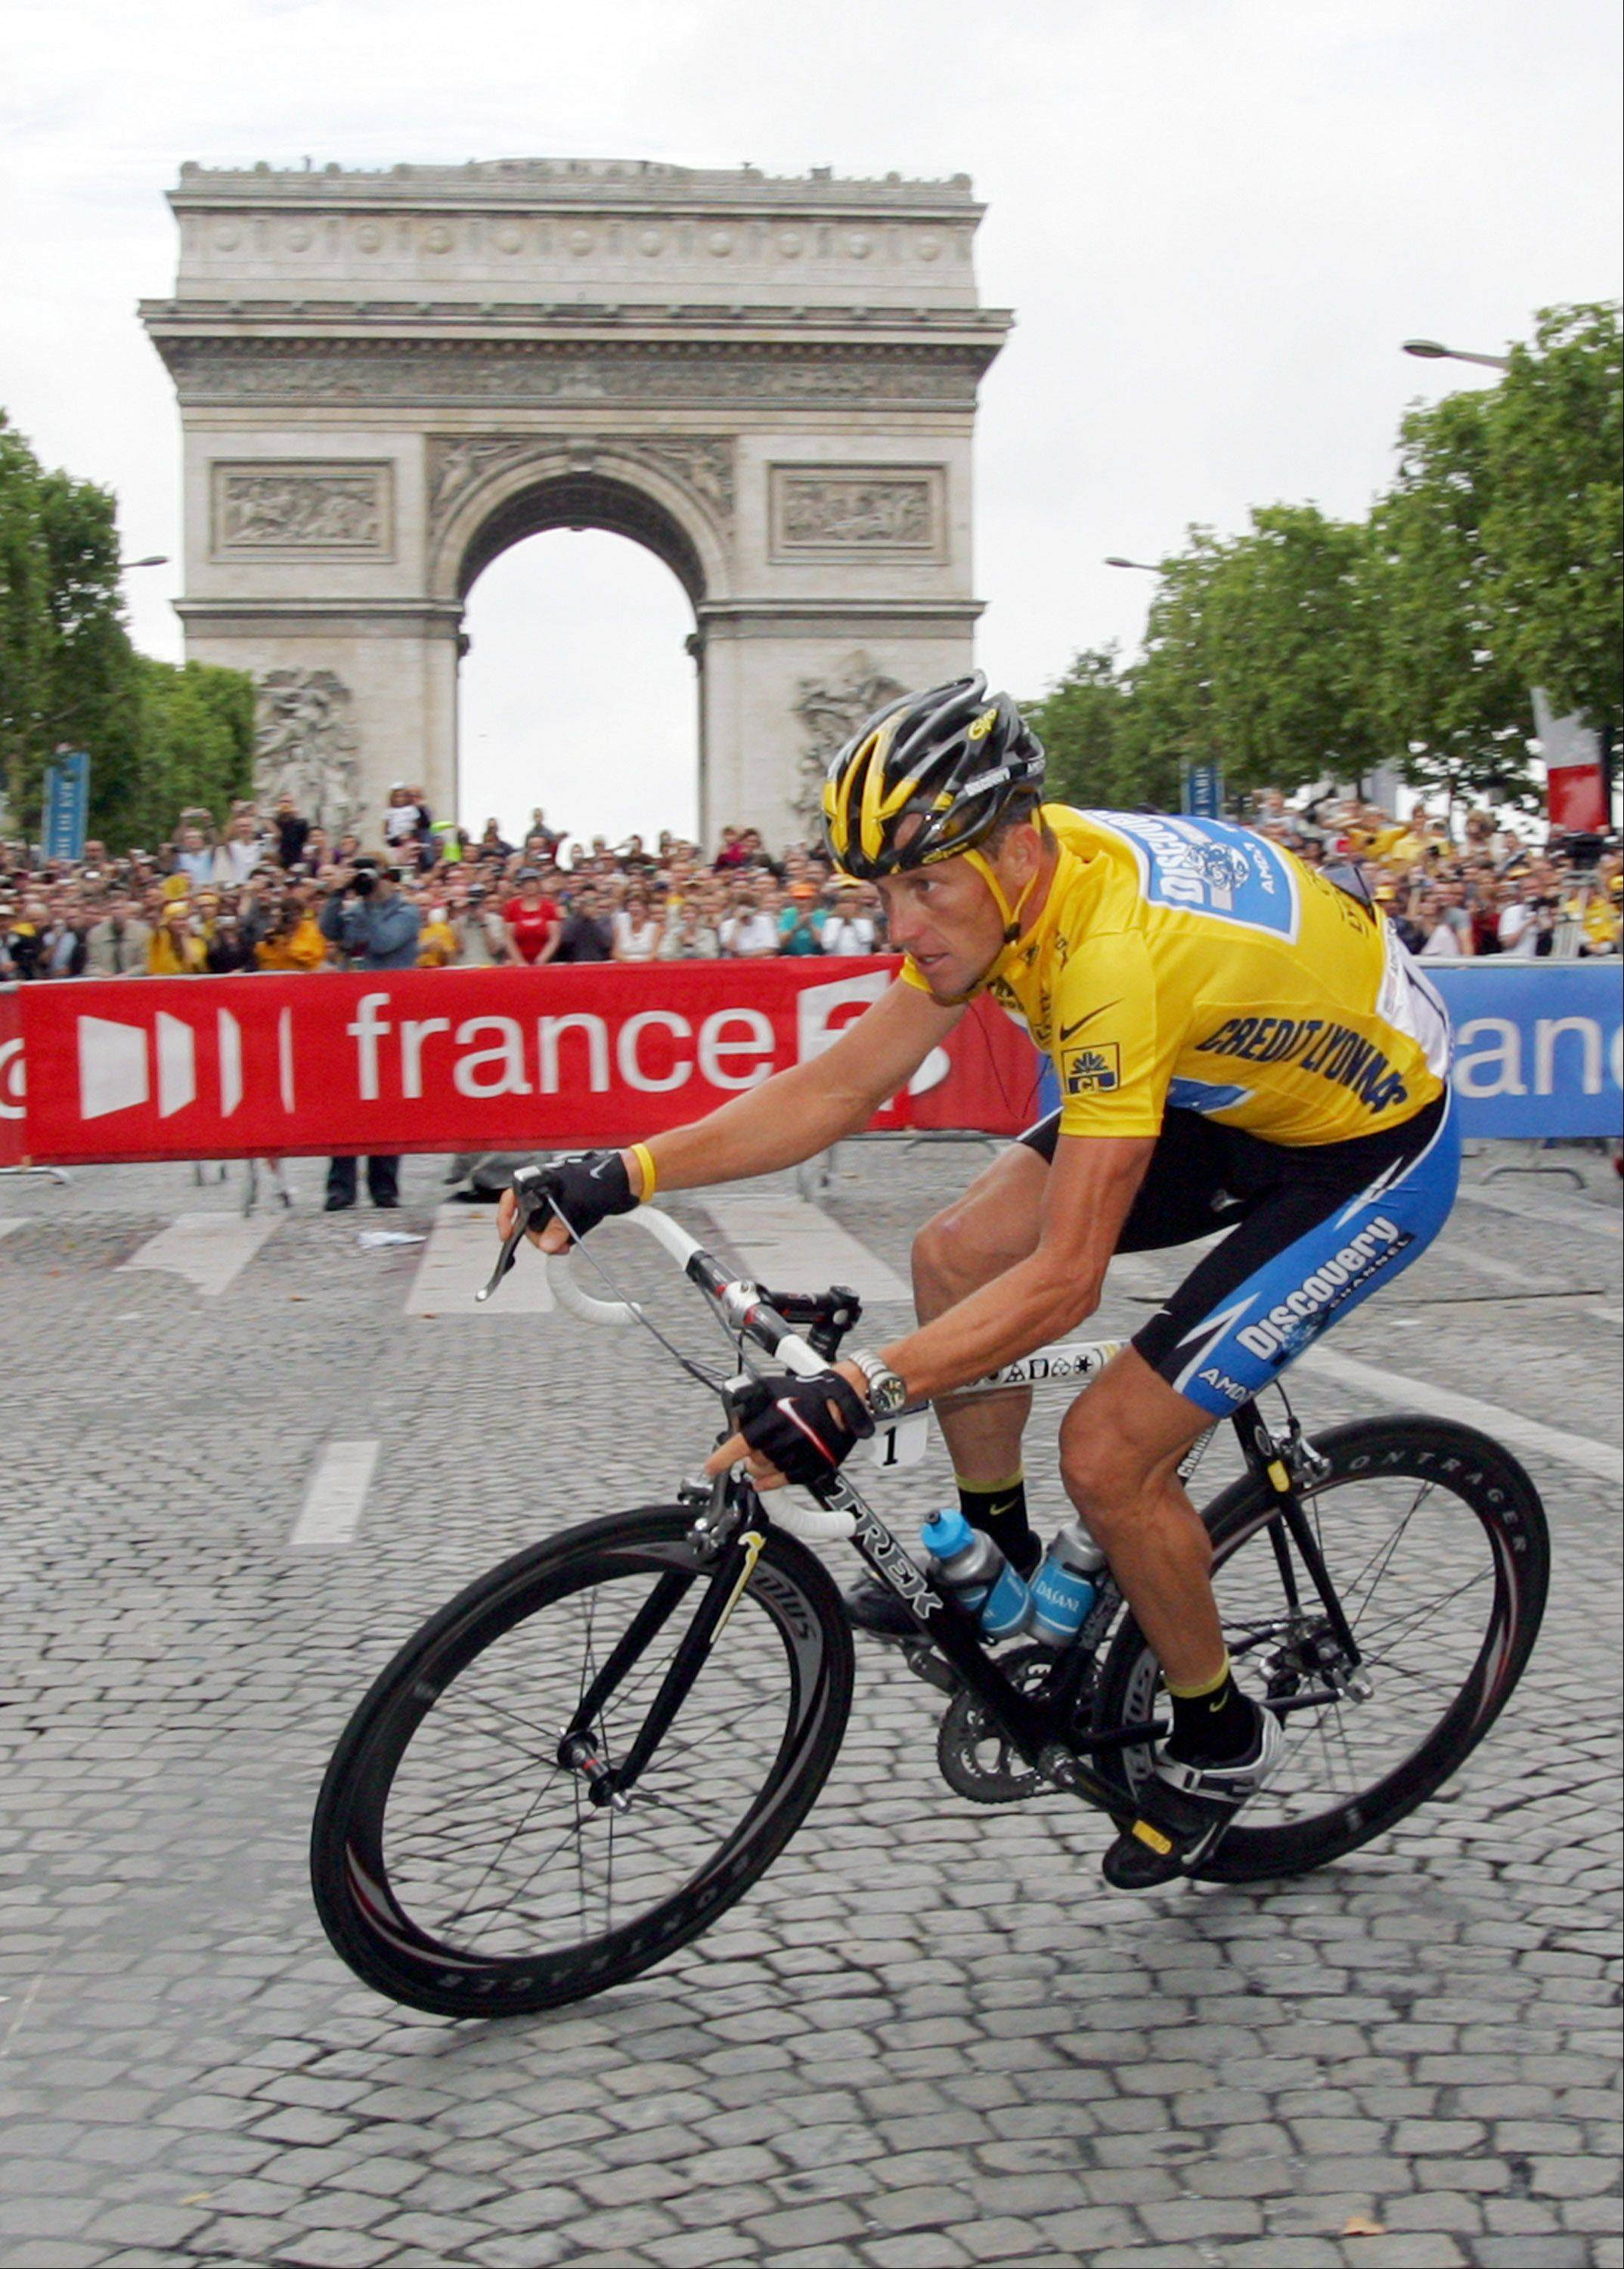 In this July 24, 2005 file photo, overall leader Lance Armstrong, of Austin, Texas, pedals past the Arc de Triomphe in Paris on his way to win his seventh straight the Tour de France cycling race, during the 21st and final stage of the race between Corbeil-Essonnes, south of Paris, and the French capital. Armstrong will ride in the 2009 Tour de France, marking the first time he will compete in that race and the Giro d'Italia in the same year.